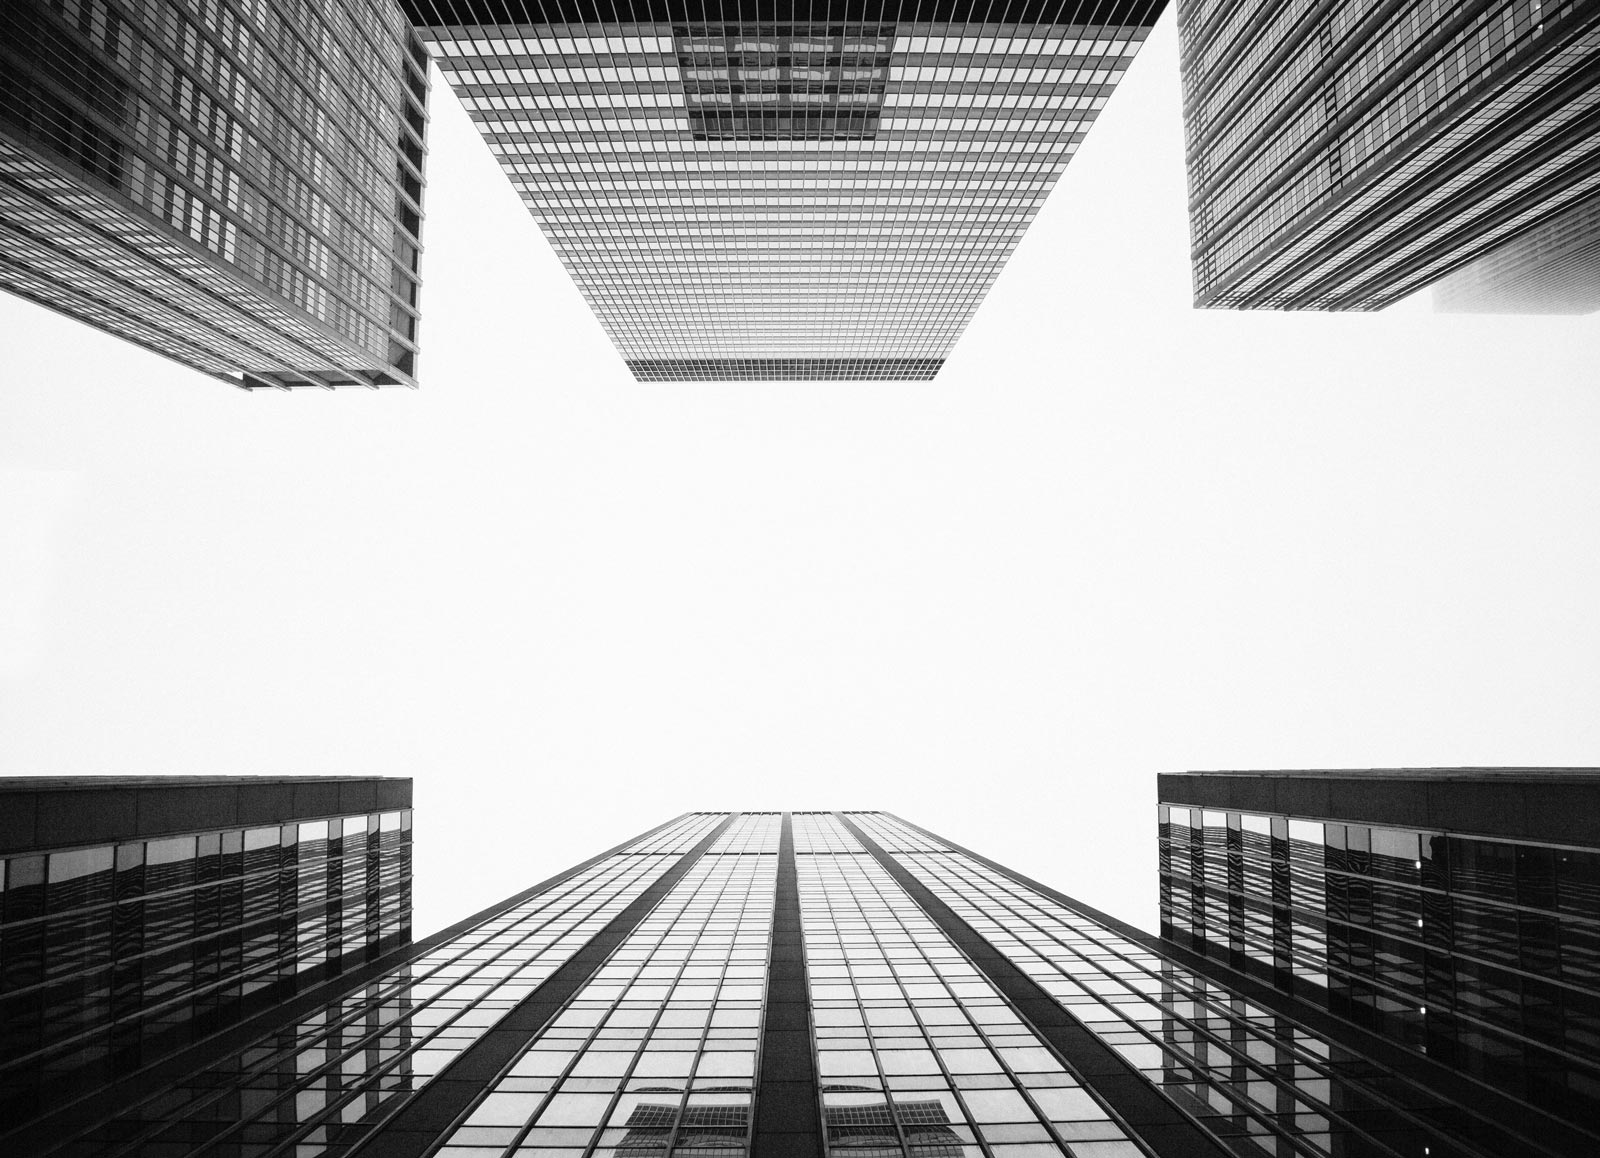 Black and white photo looking up at corporate buildings from the street